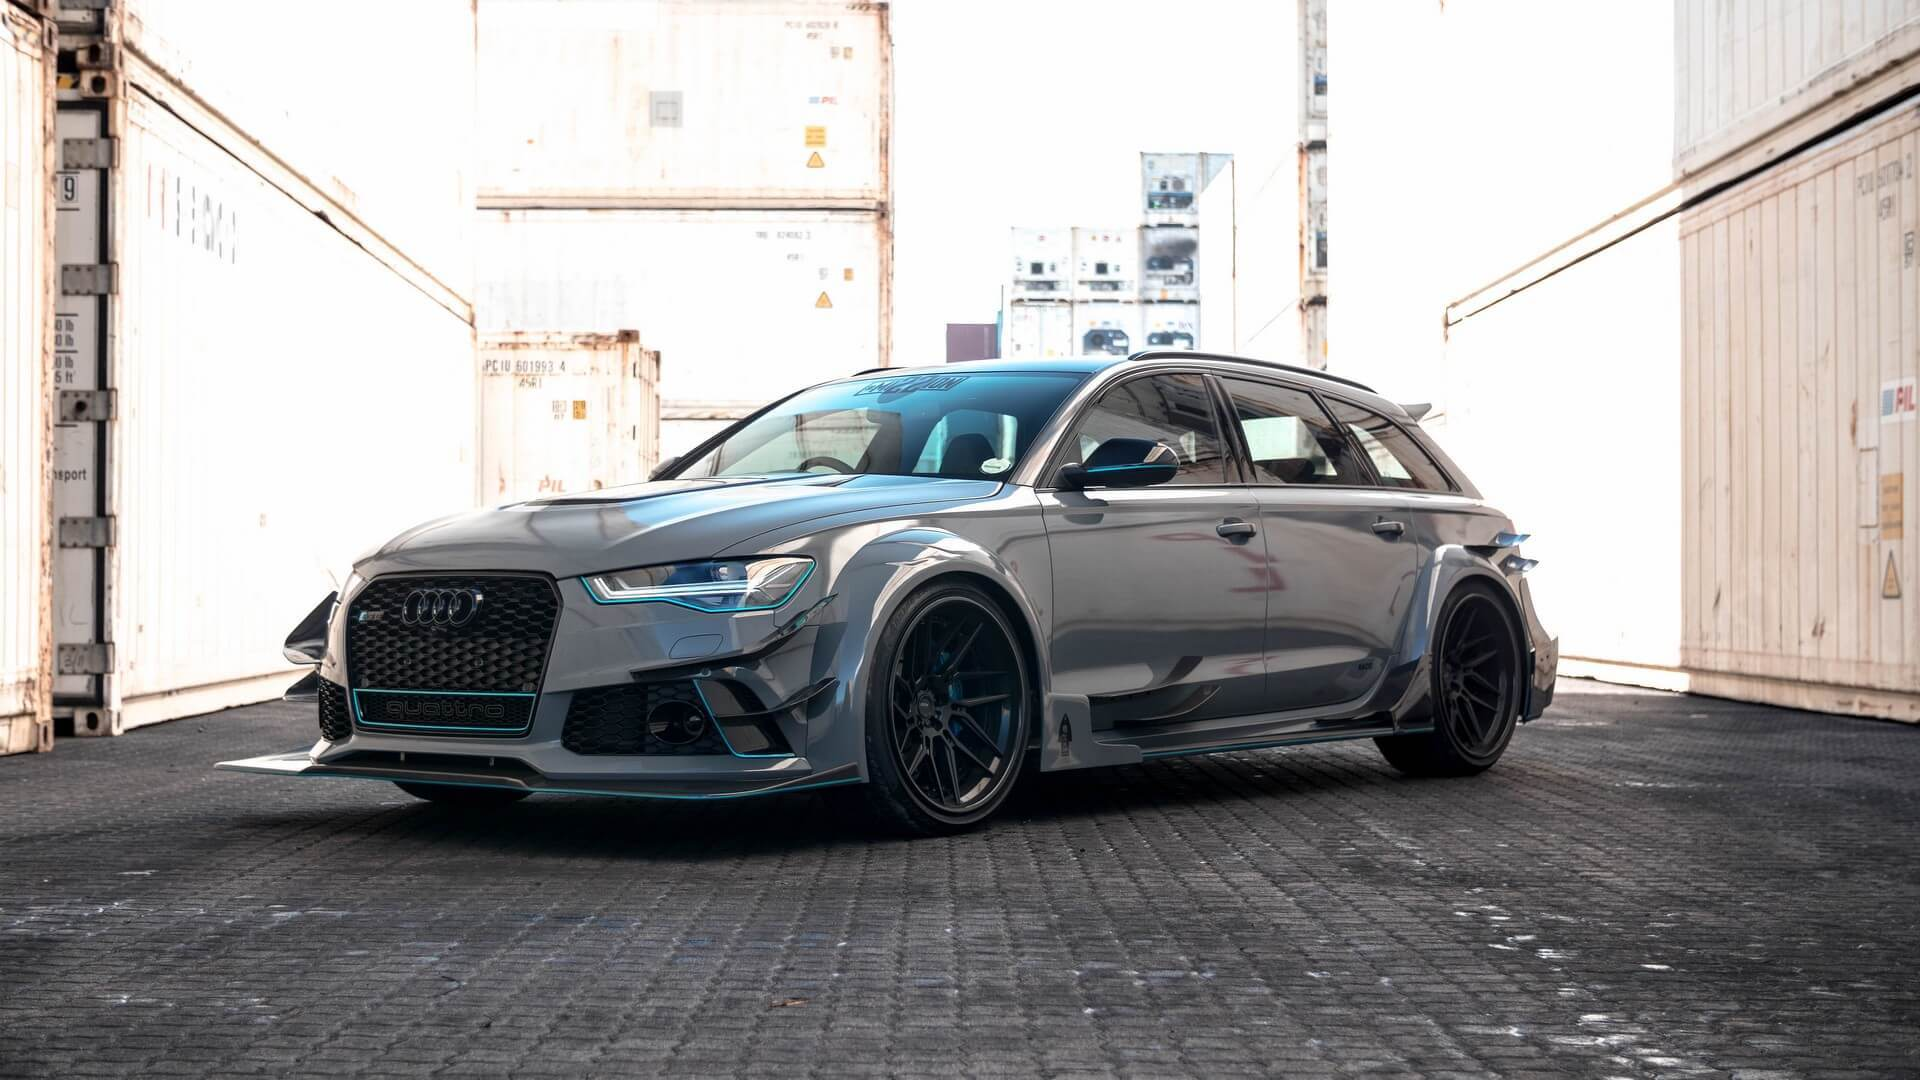 SAR-based car design atelier Race! has unveiled an unusual and most profound take on the Audi RS6 racing vehicle